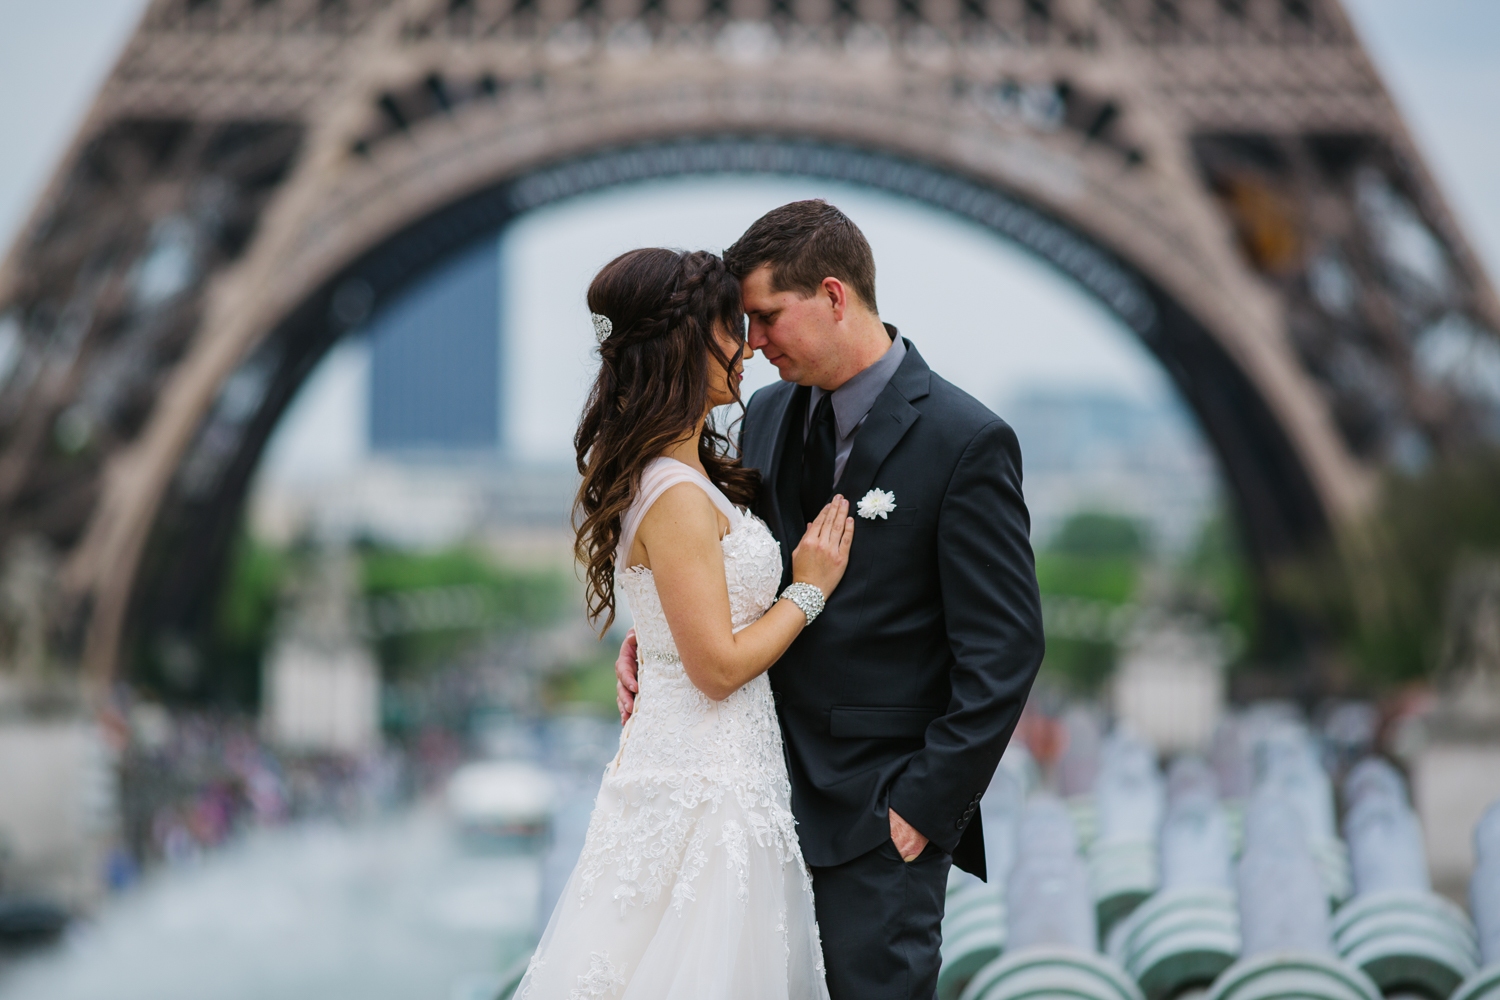 Chico-Wedding-Photography-Ranalla-Photo-Films-Wedding-Video-Wedding-Photographer-Destination-wedding-photographer-venice-wedding-paris-wedding-paris-night-eiffel-tower-4.jpg